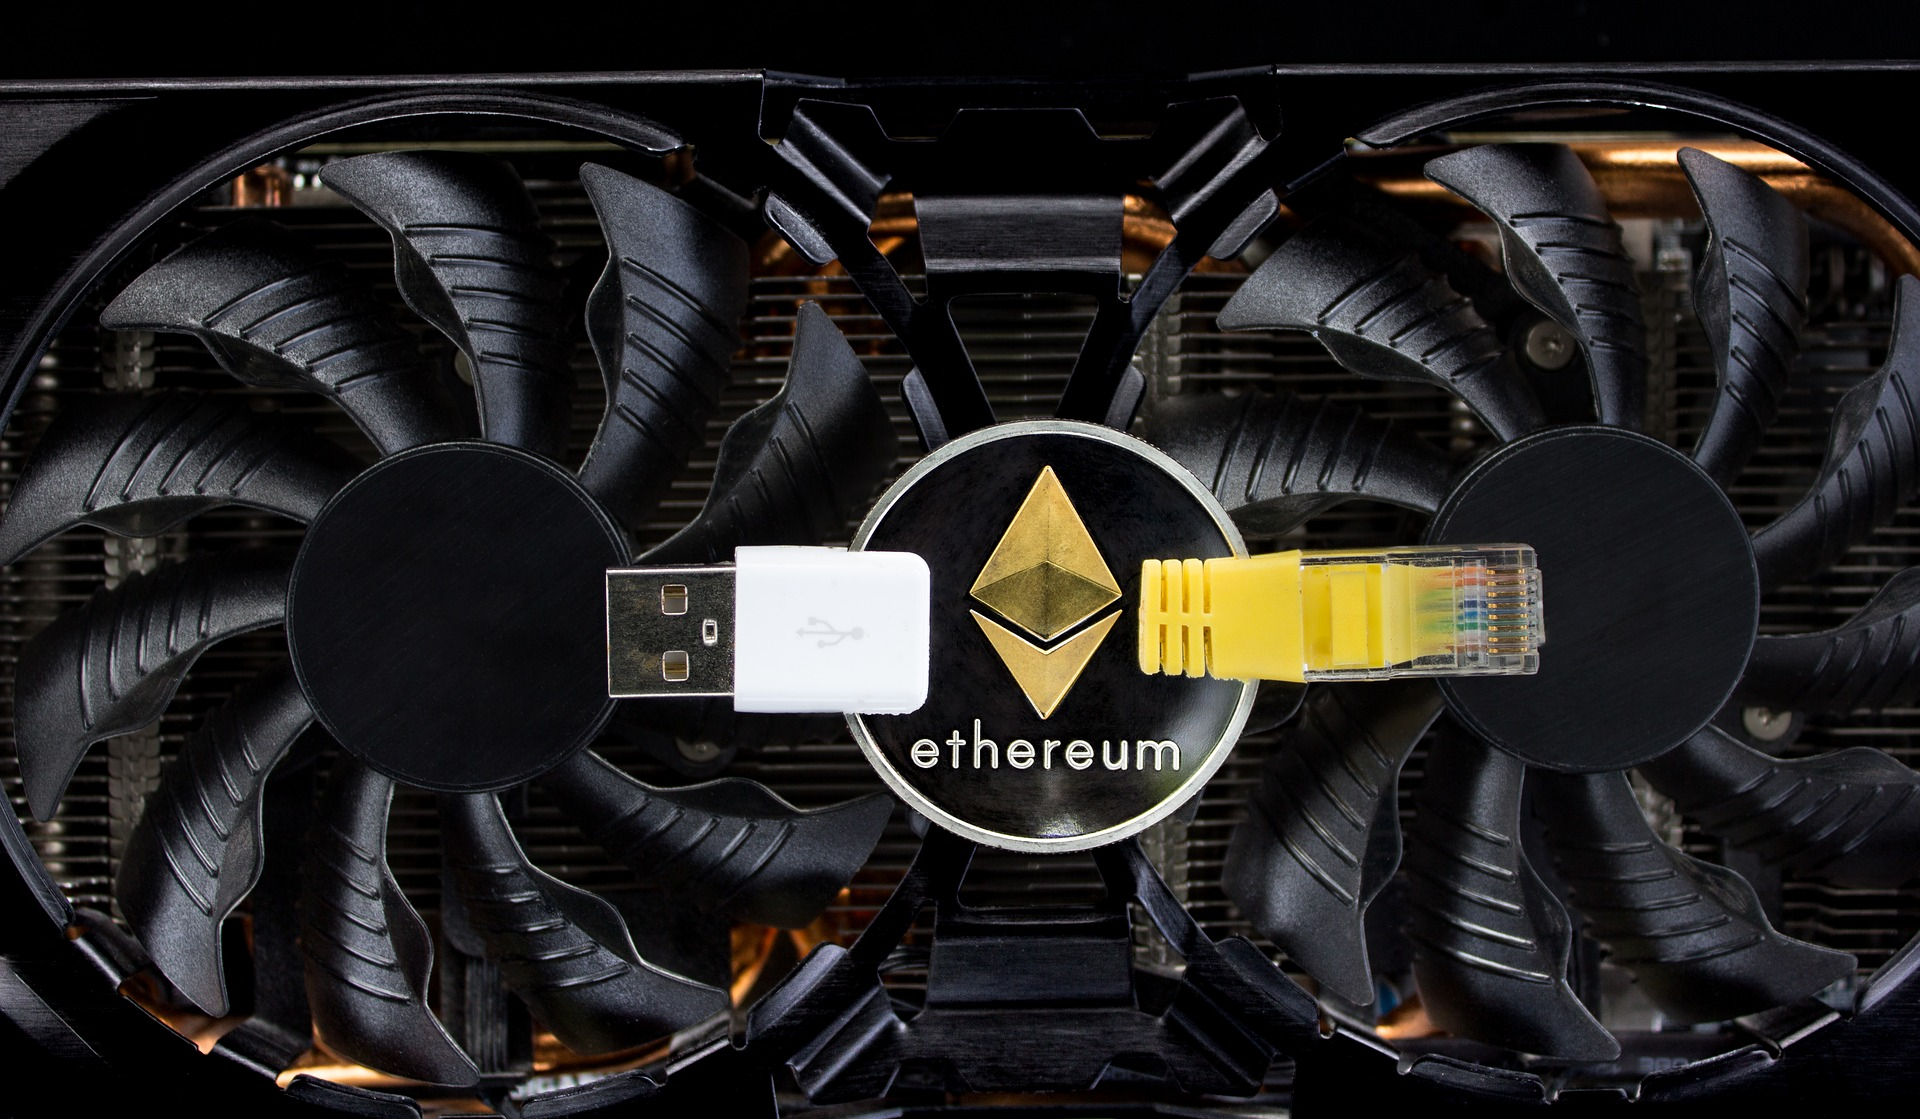 The price of Ethereum gas remains high